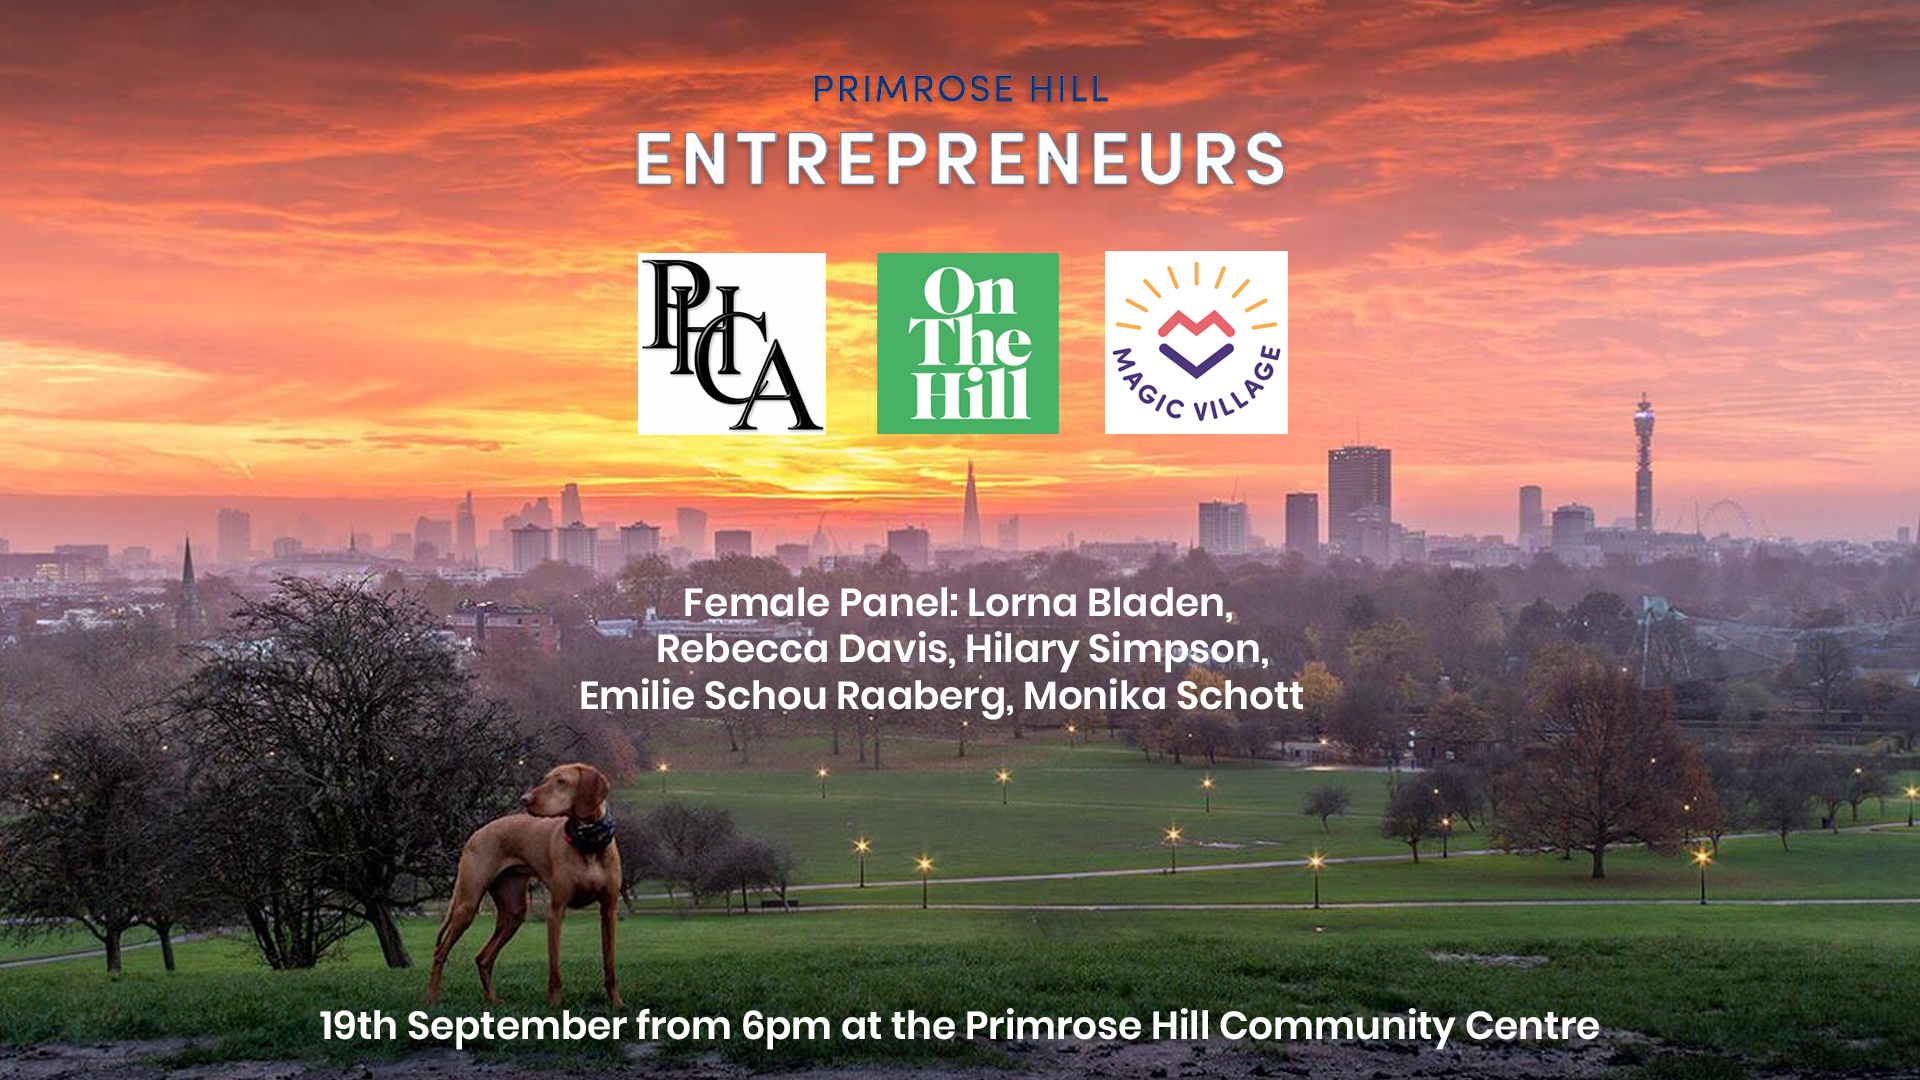 Primrose Hill Entrepreneurs Female Panel